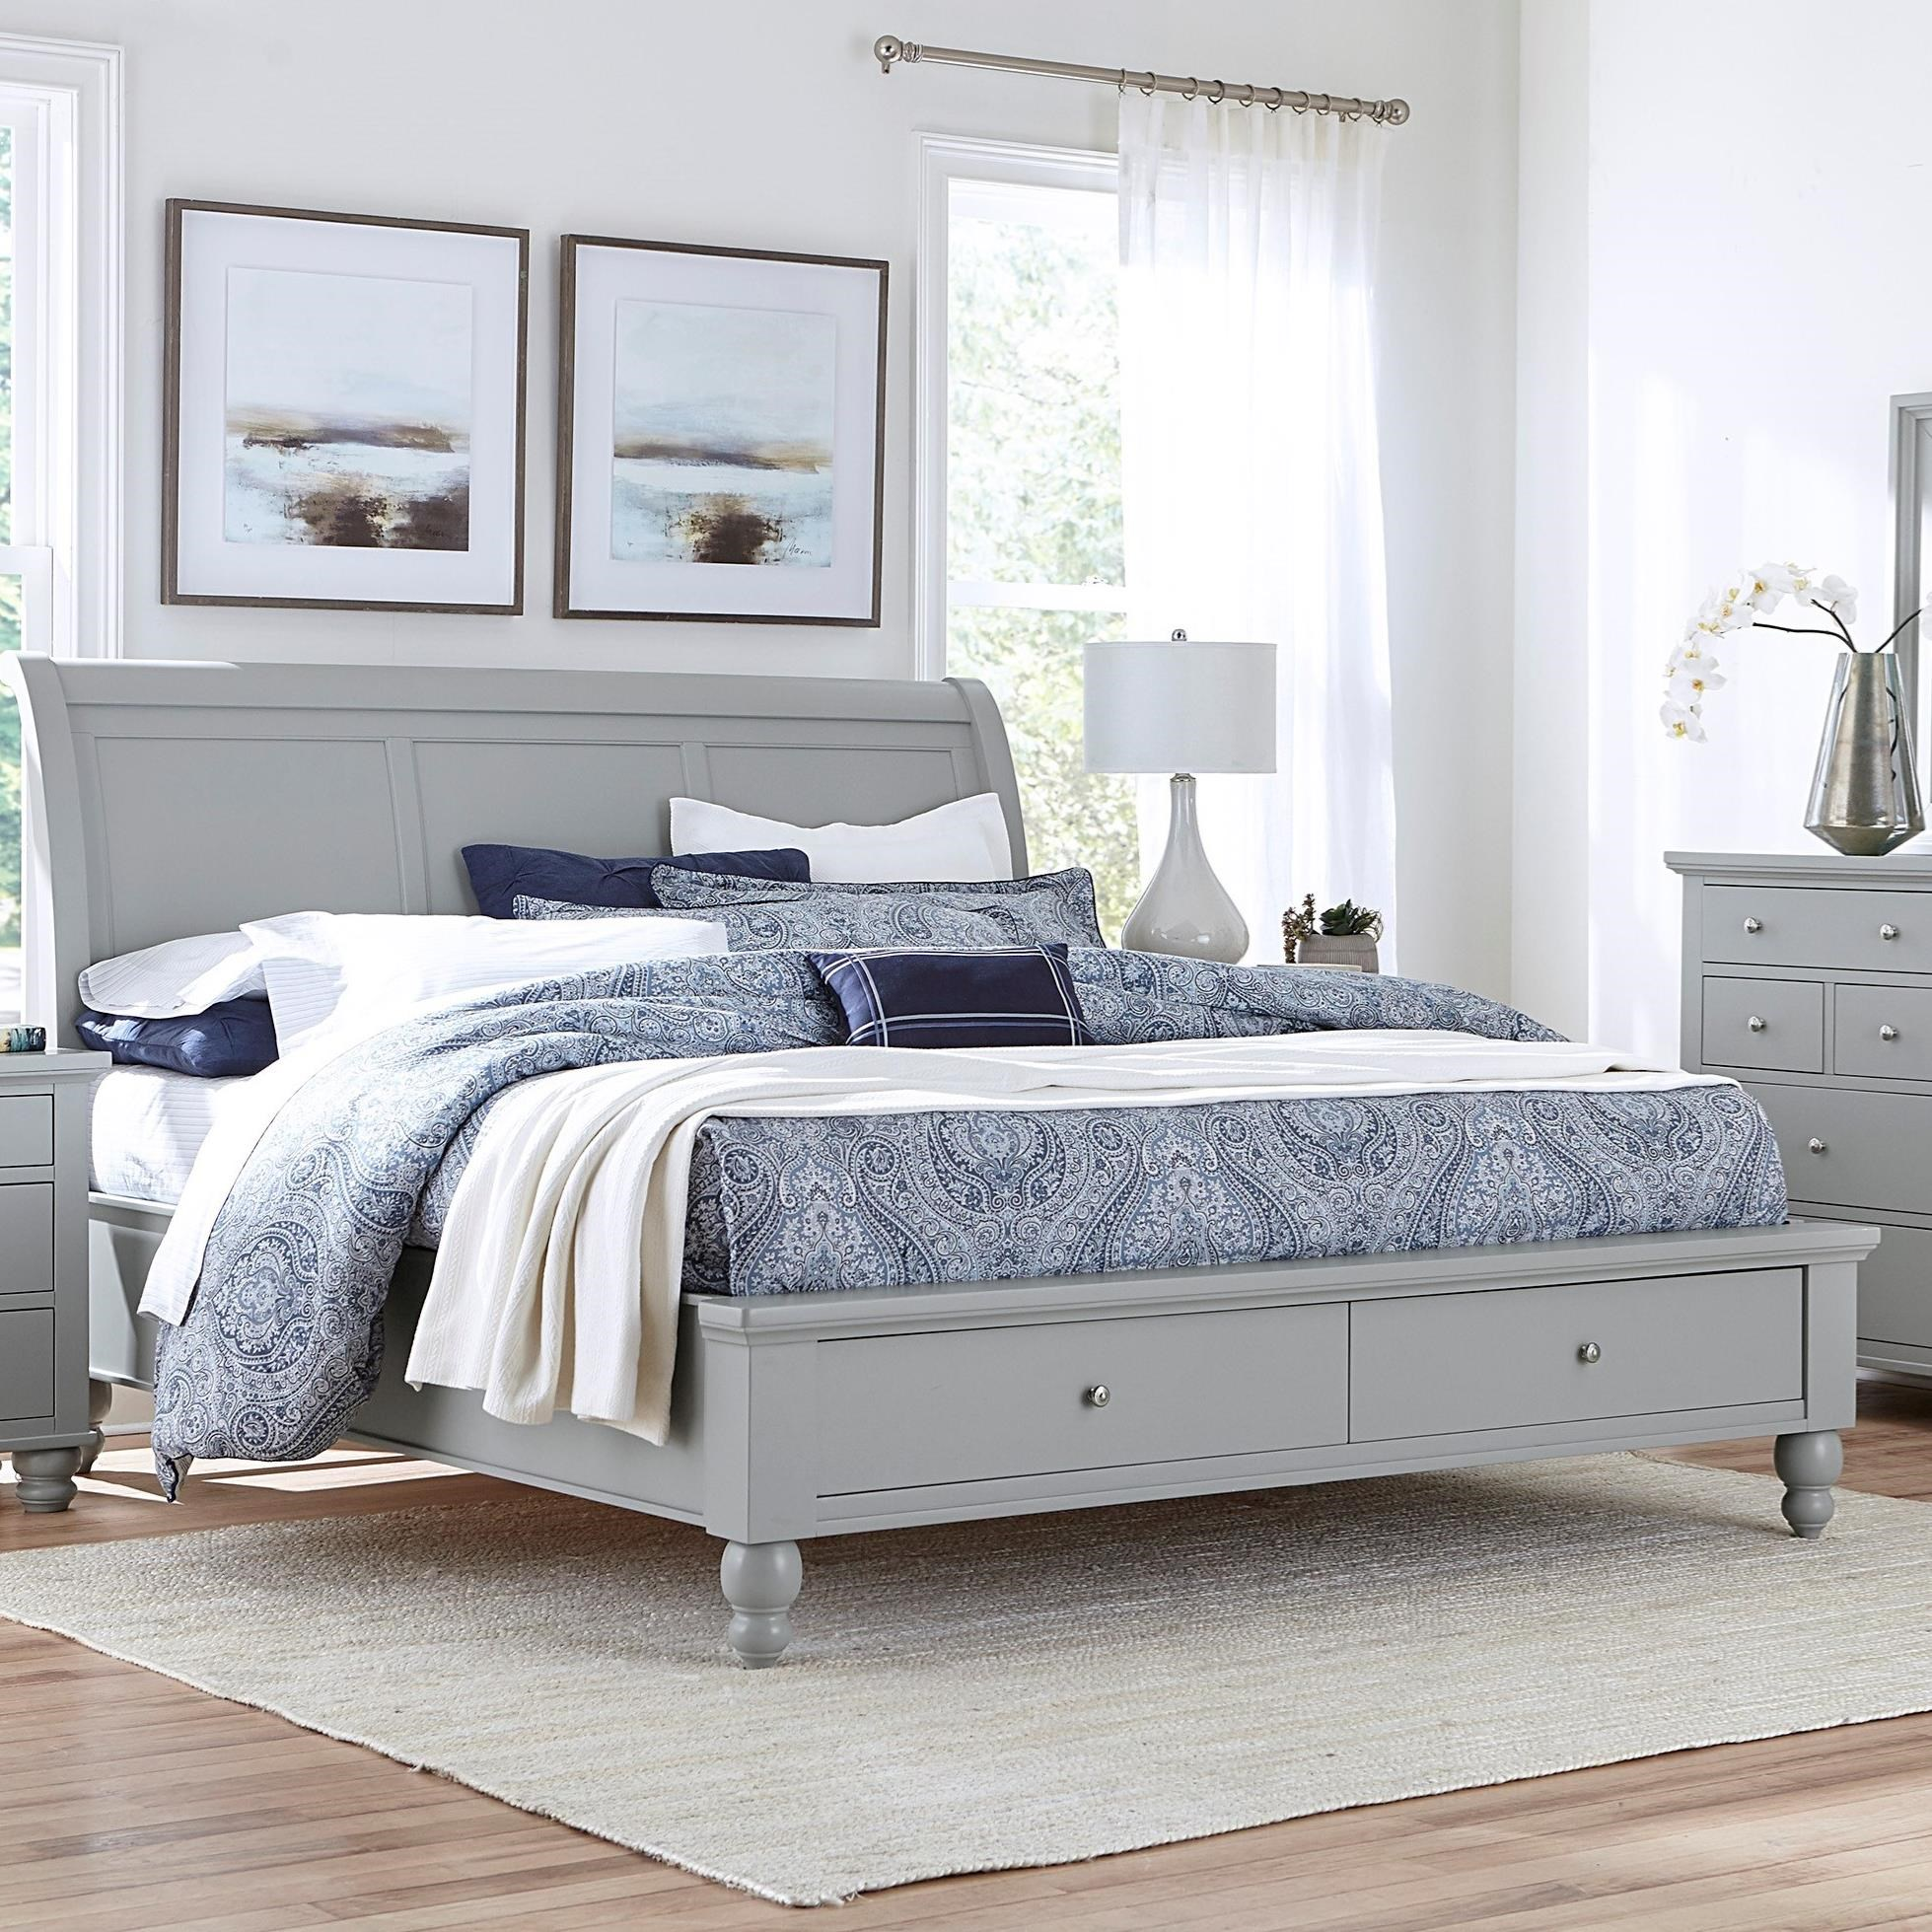 Aspenhome Cambridge King Size Bed With Sleigh Headboard Amp Drawer Storage Footboard Wayside